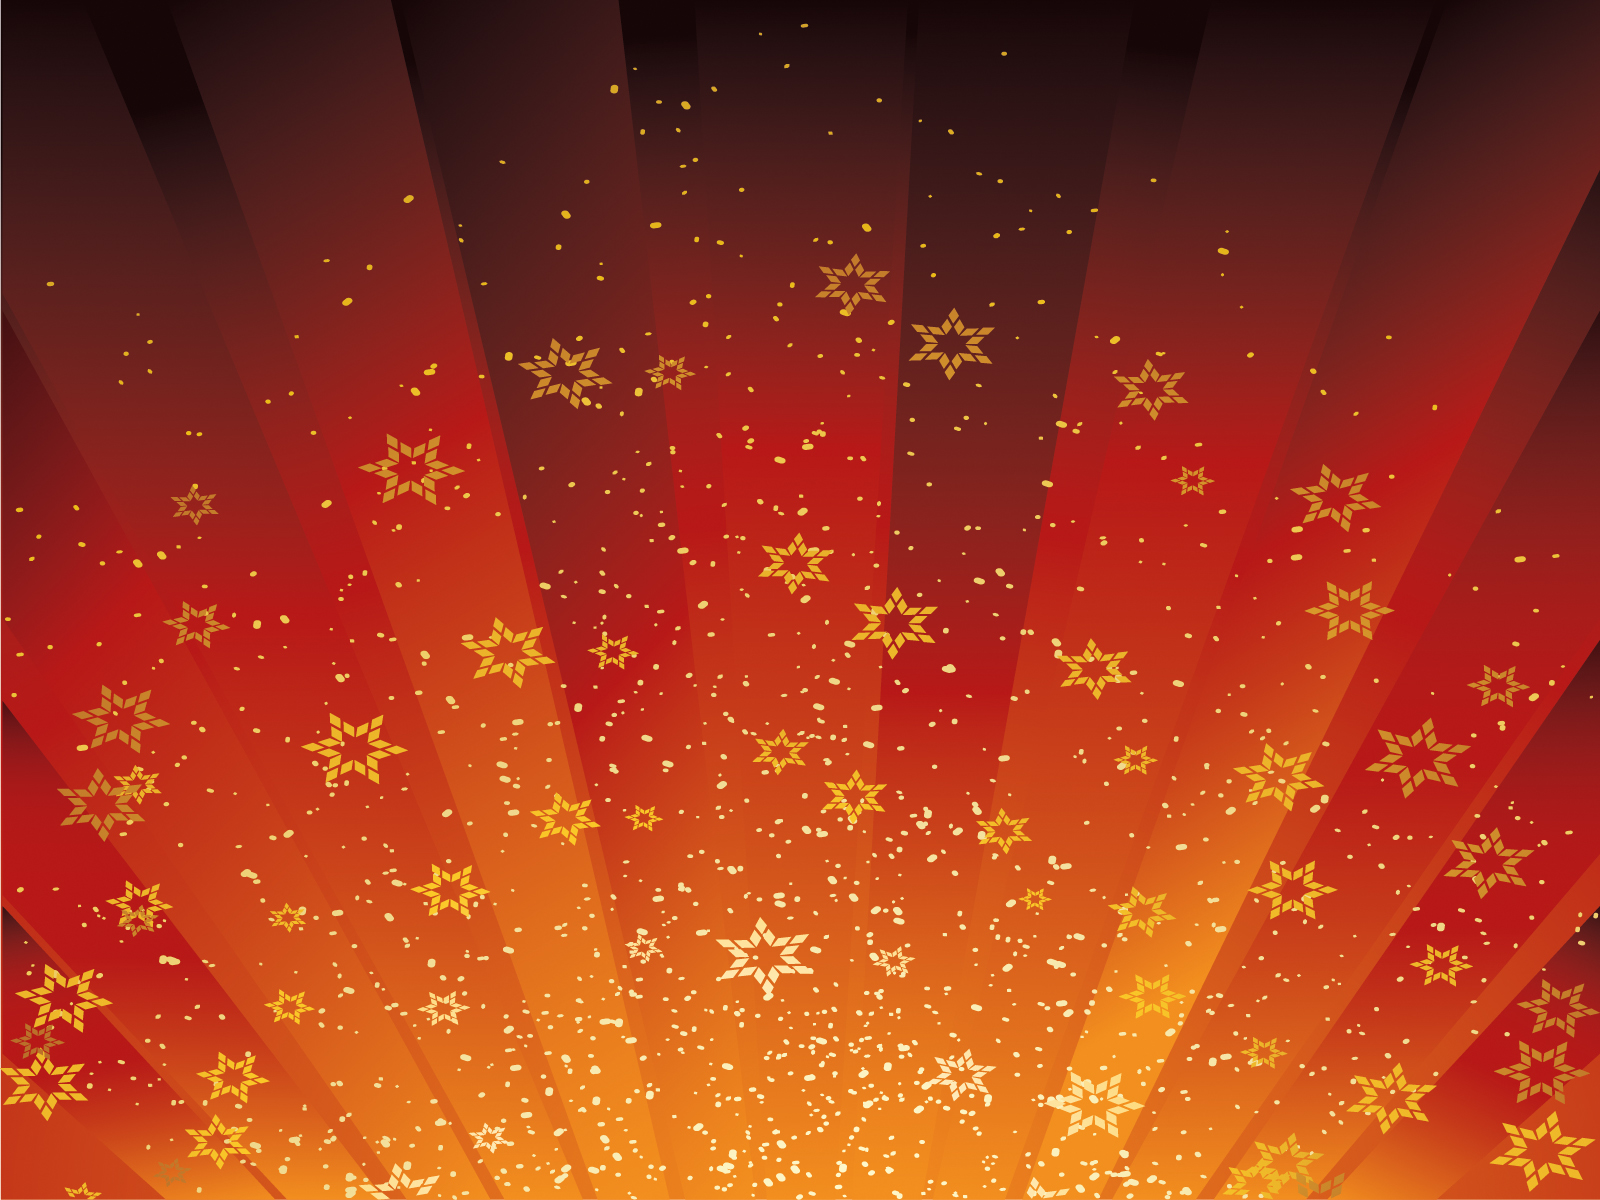 Stars Are Dancing Backgrounds | Design, Love, Orange ...